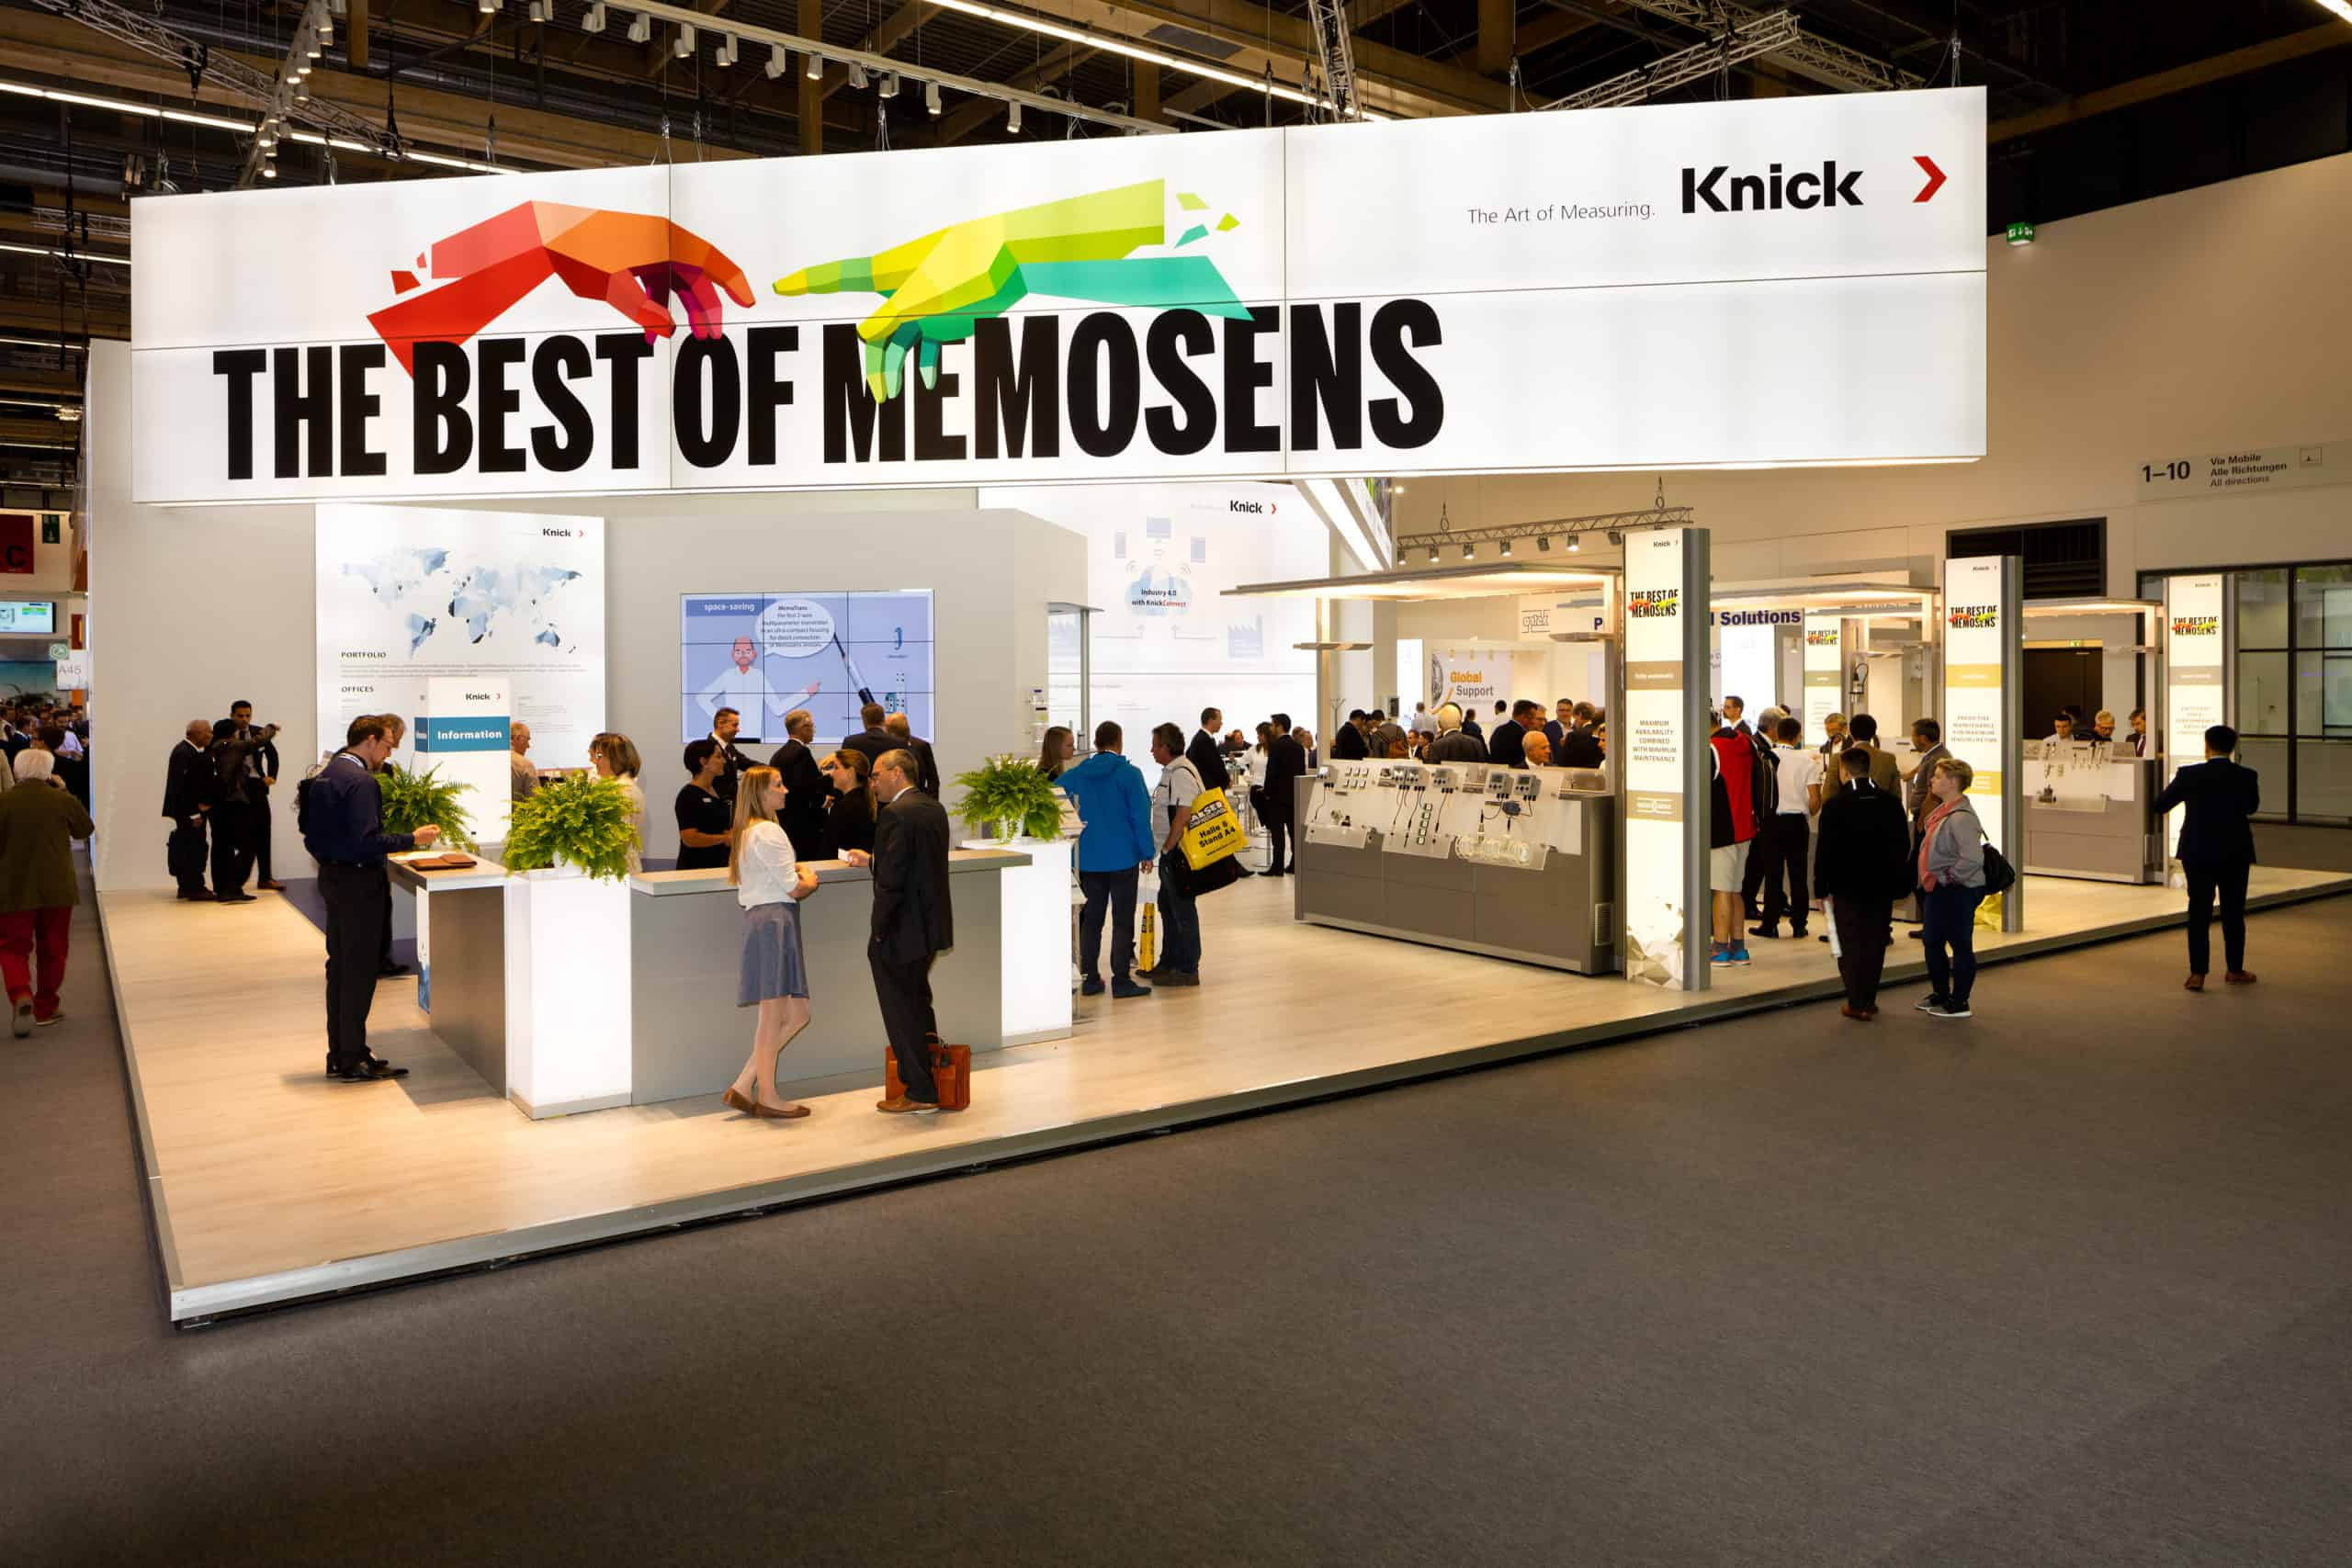 Knick exhibition stand including several white display areas and lots of people milling around with a large sign above reading the best of memosens